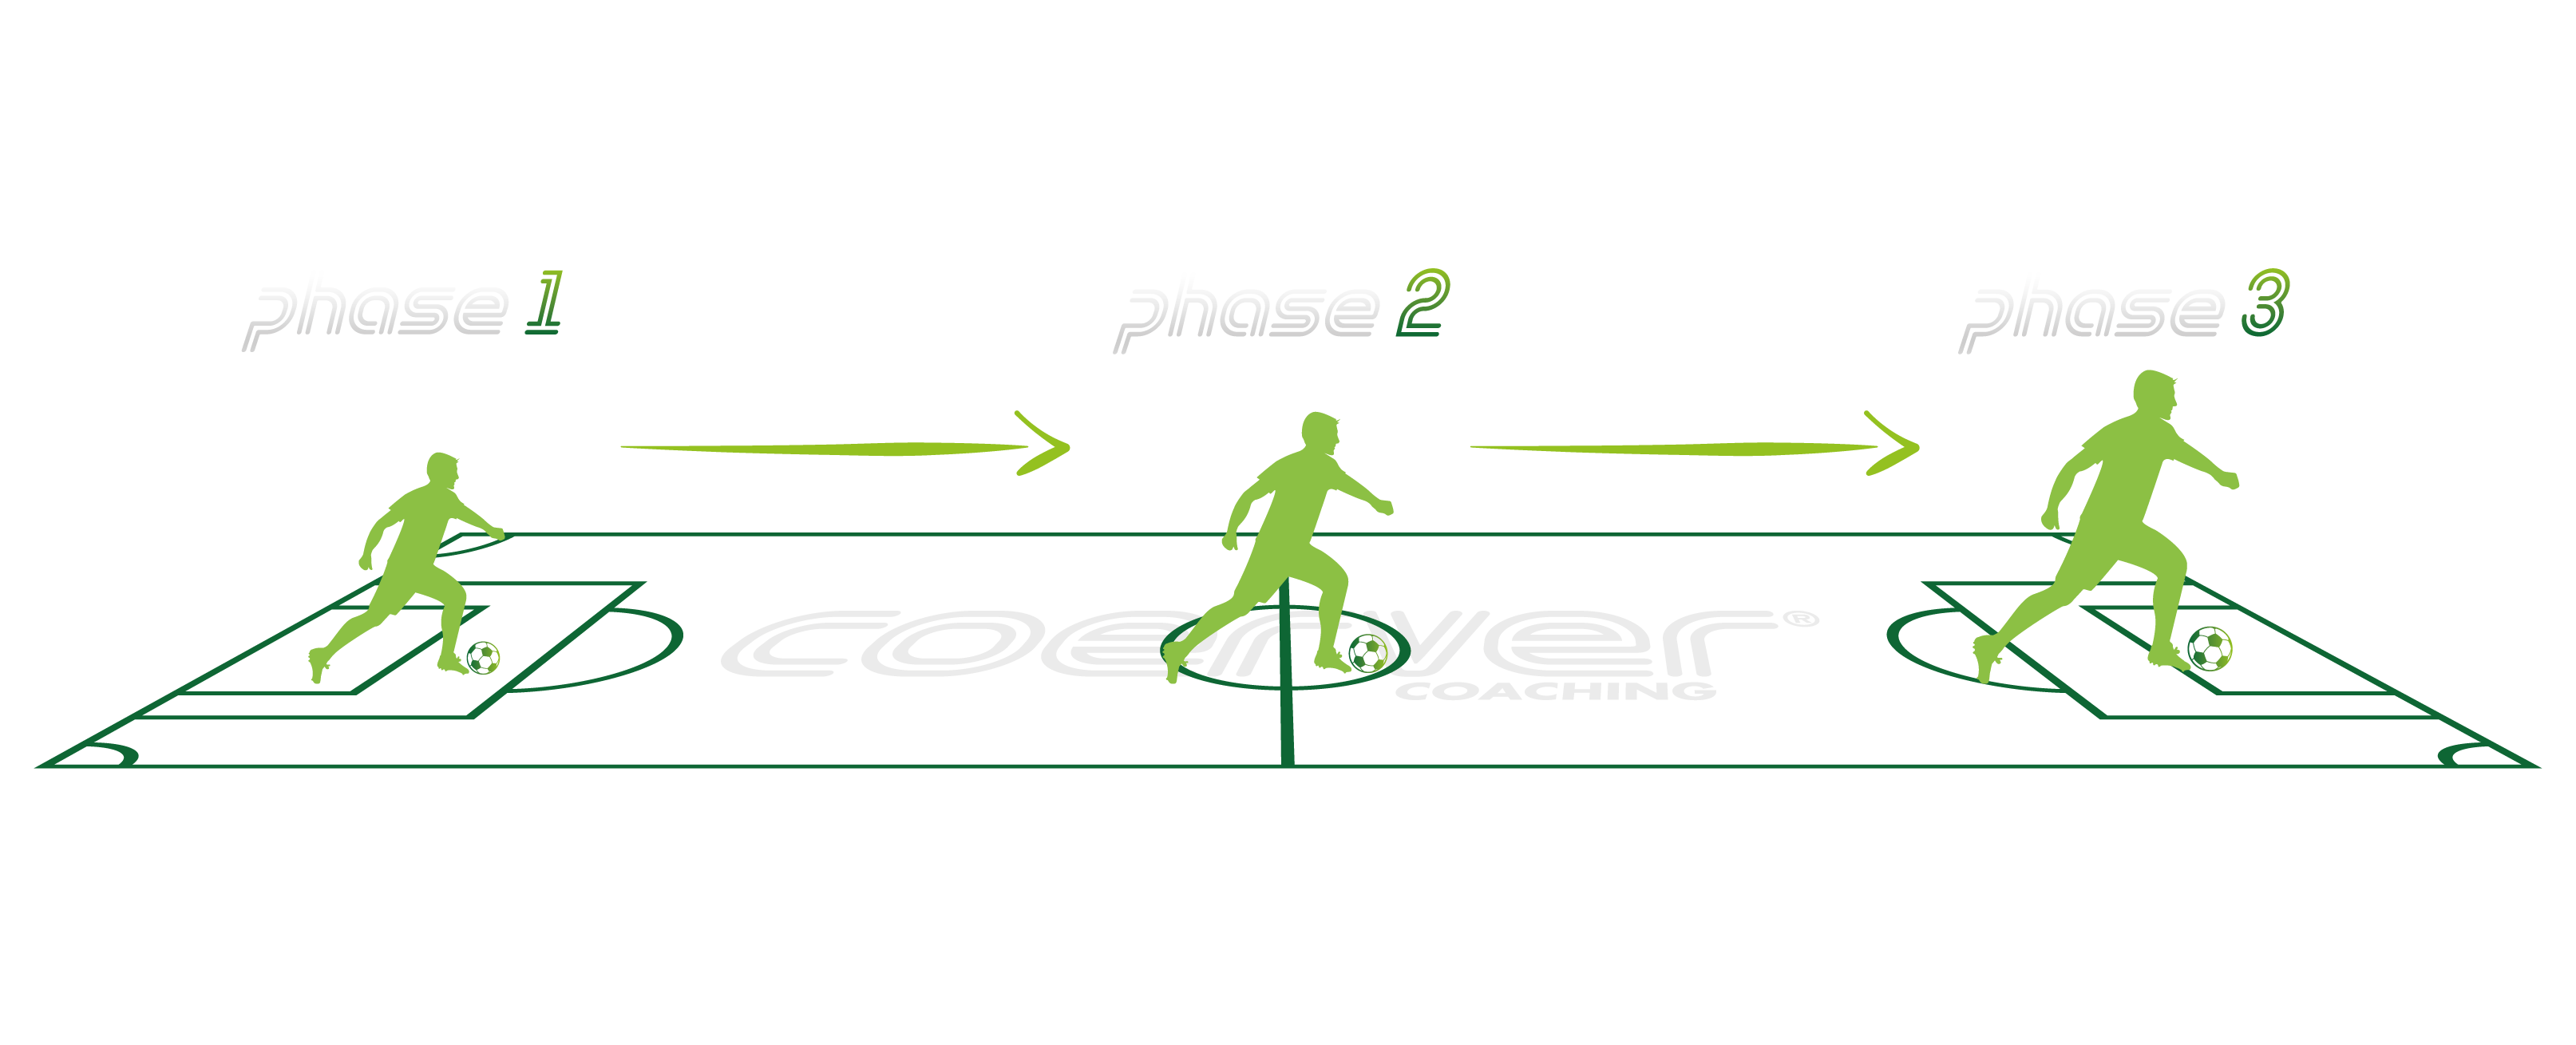 Player Pathway